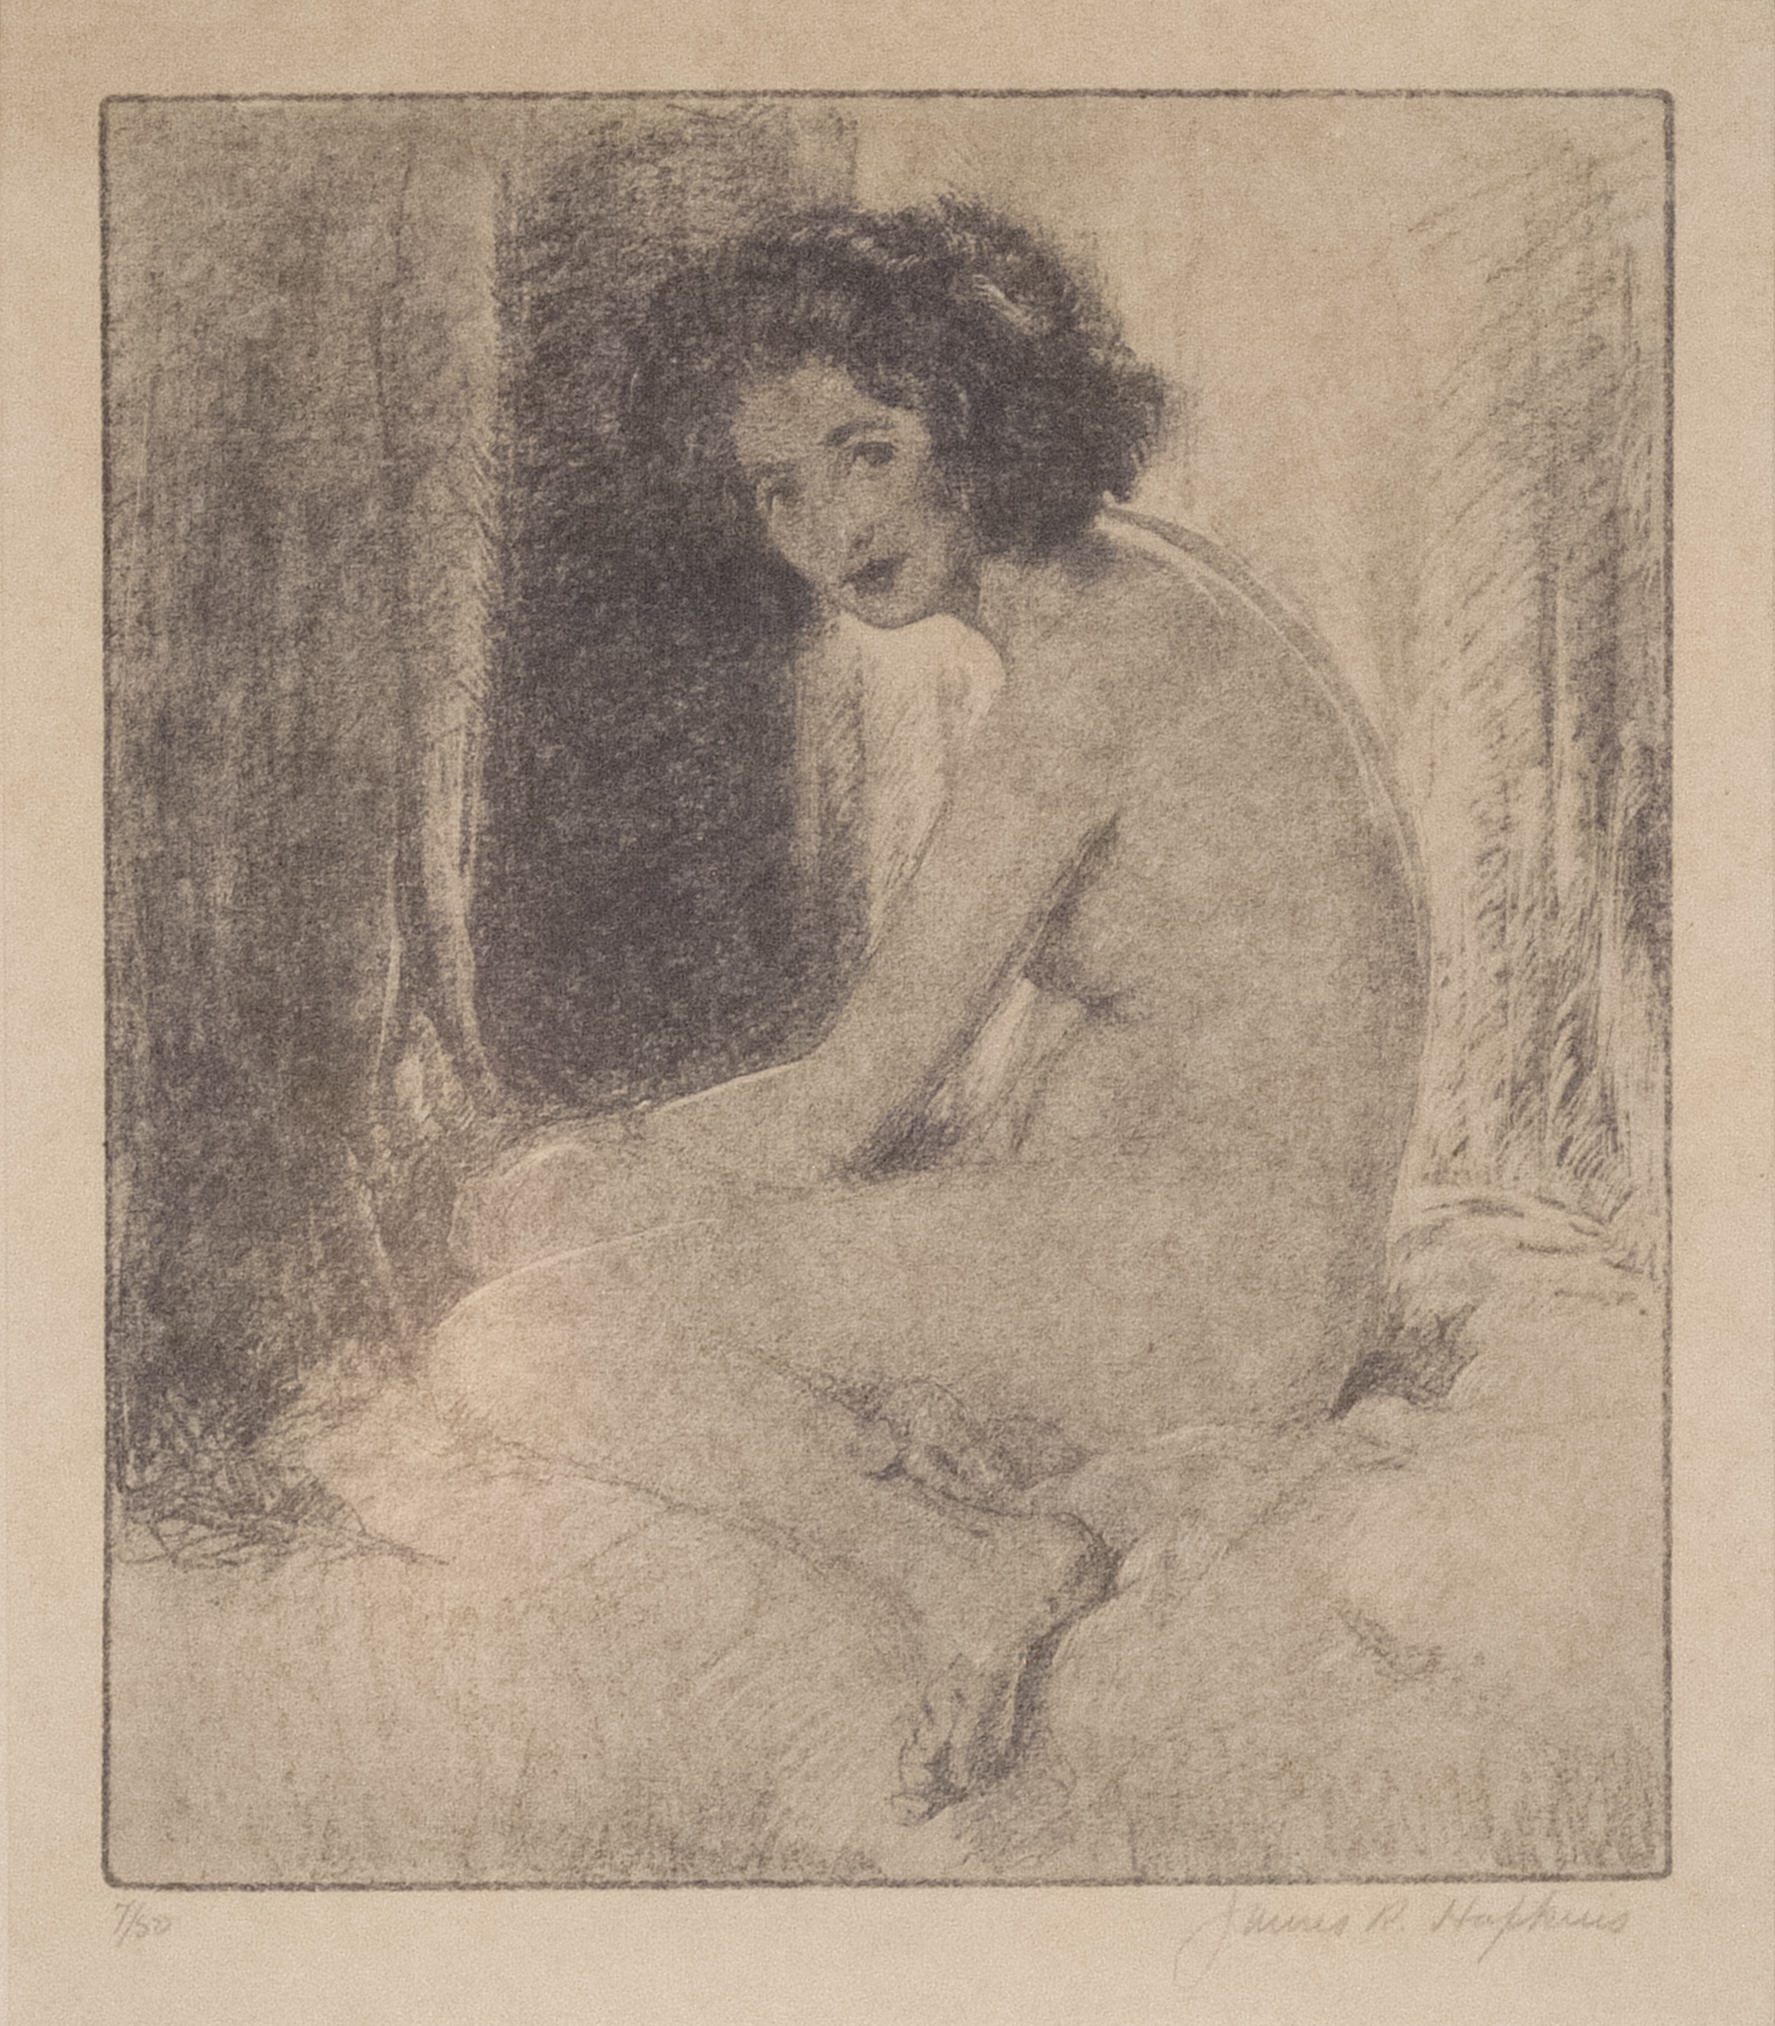 James R. Hopkins | SEATED FEMALE FIGURE | etching | 8-1/2 x 7-1/4"